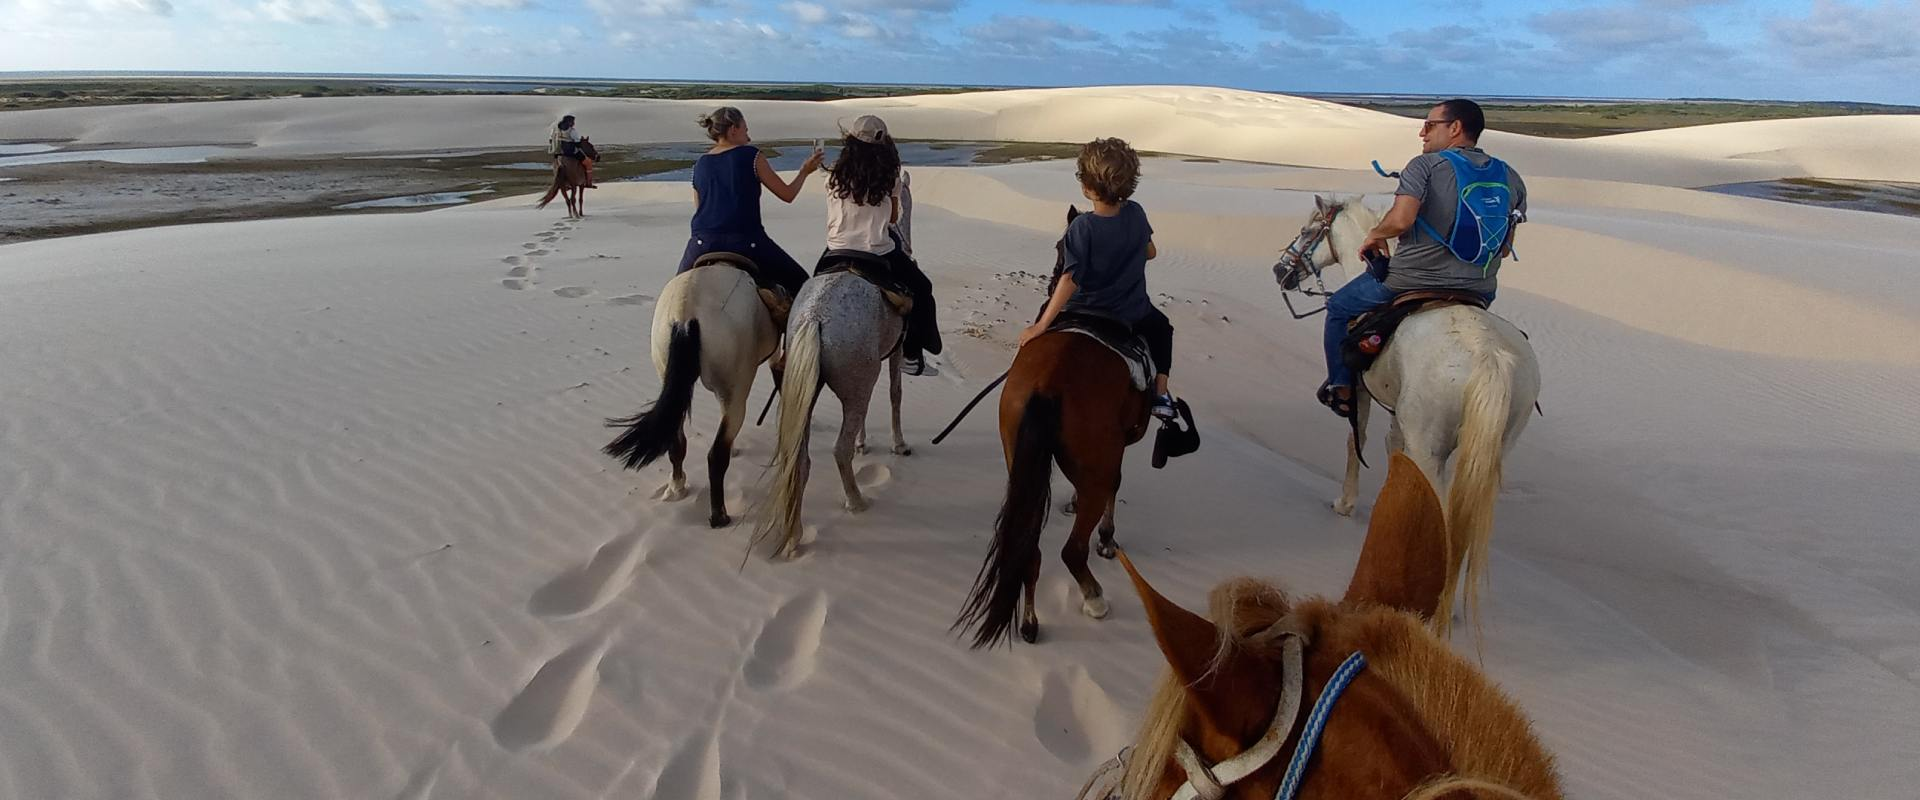 Family Travel in Atins